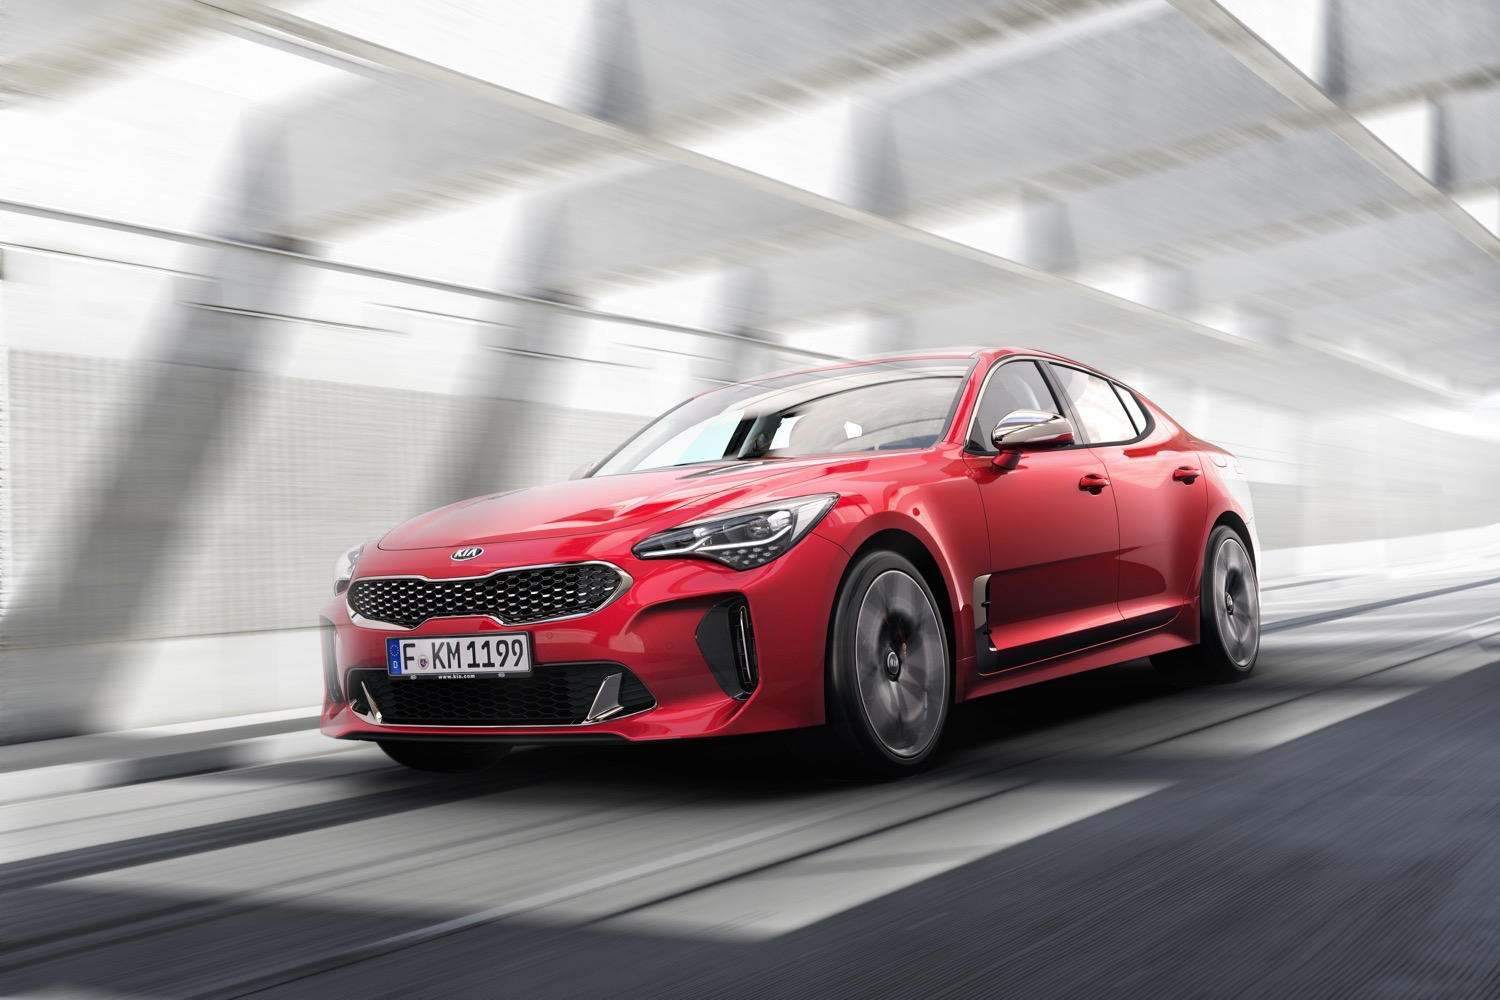 New Kia Stinger sports saloon revealed